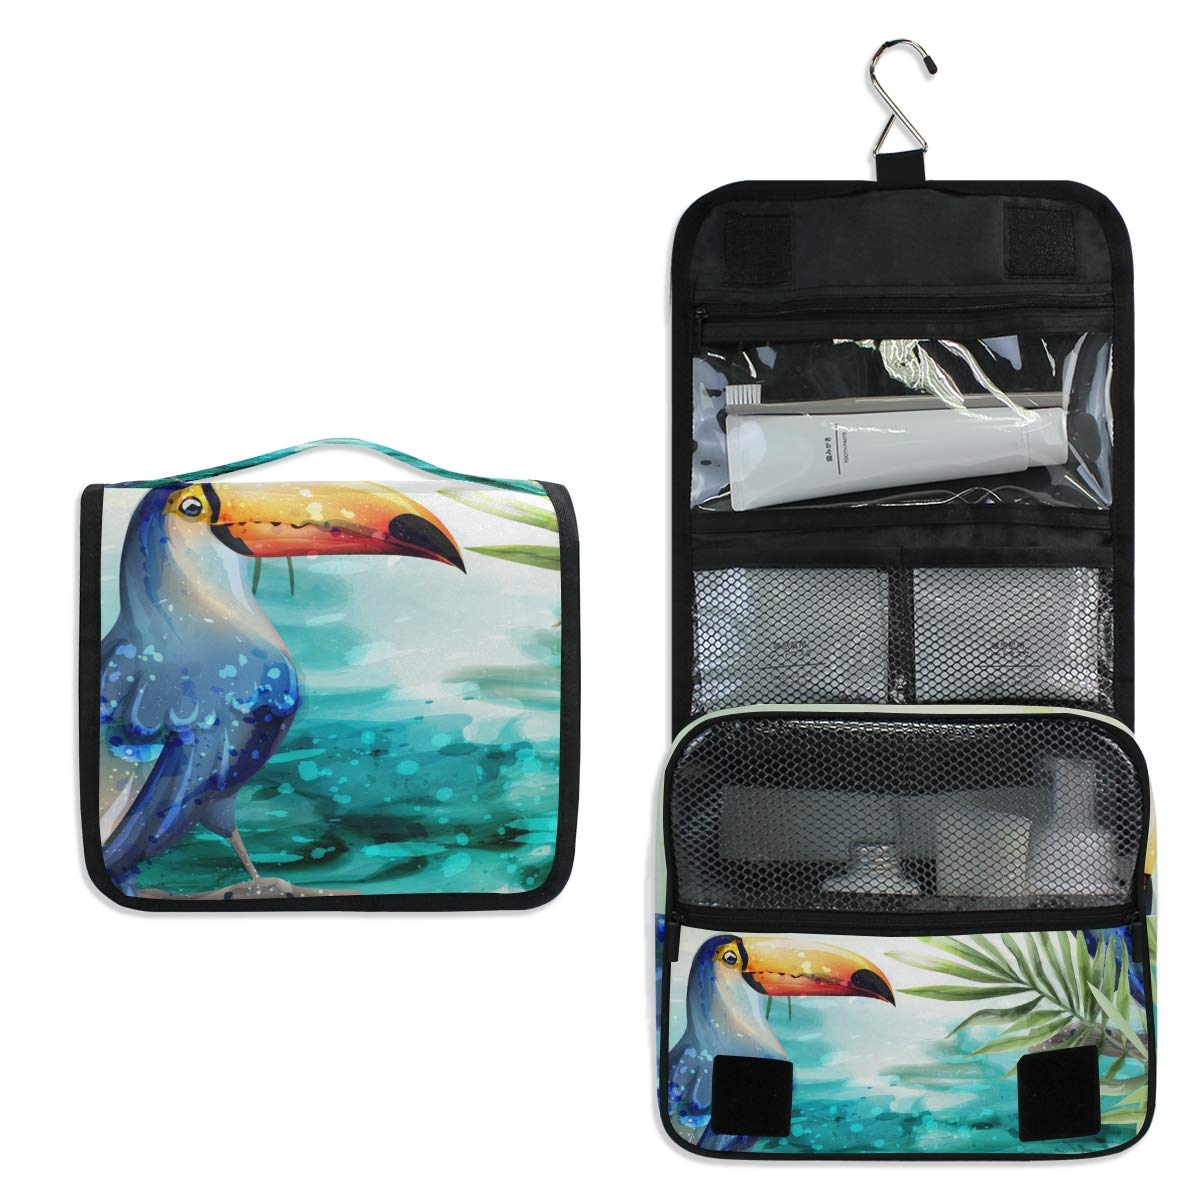 Hanging Travel Toiletry Bag - Toucan Watercolor Tropic Waterproof Cosmetic Bag Portable Makeup Pouch for Toiletries Bathroom